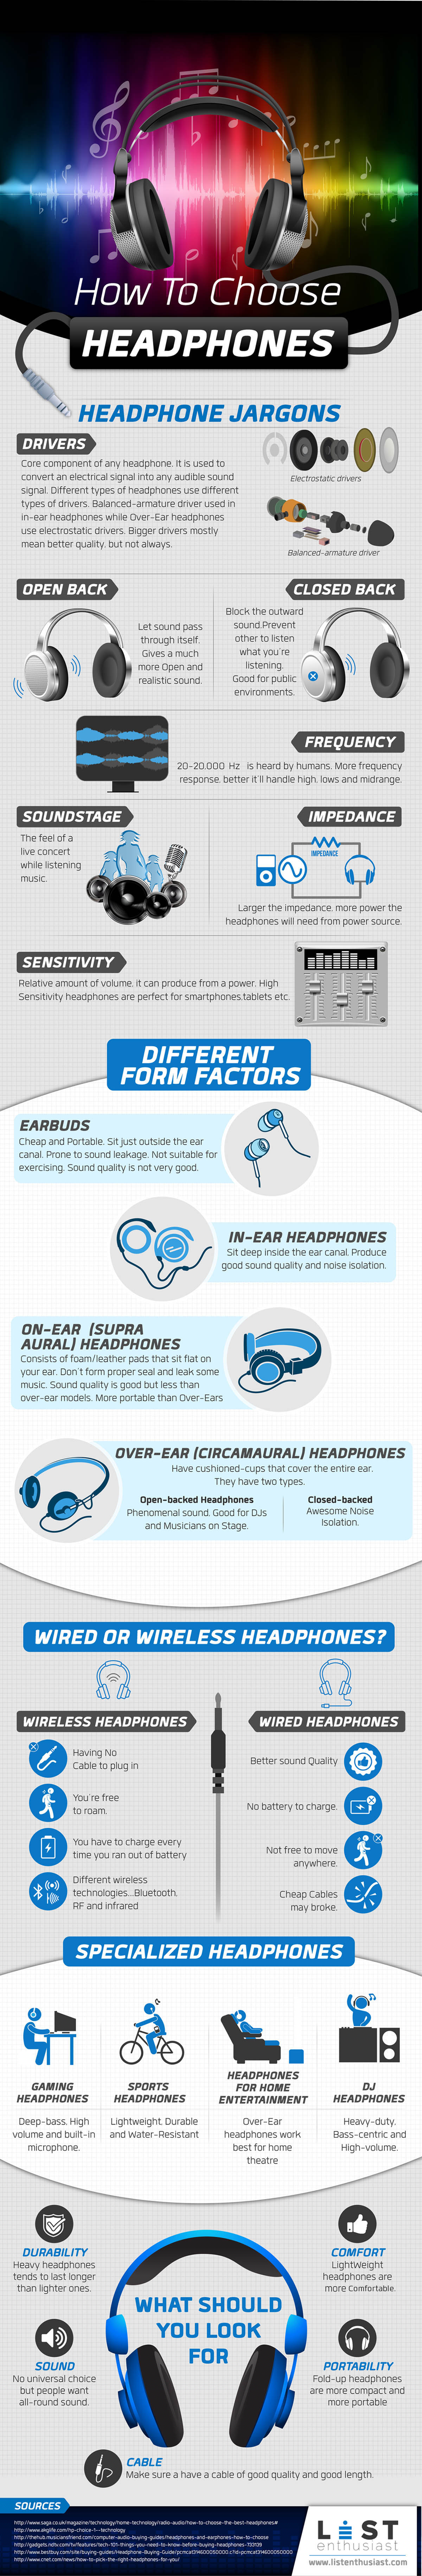 Your Perfect Pair of Headphones: How to Choose - Infographic